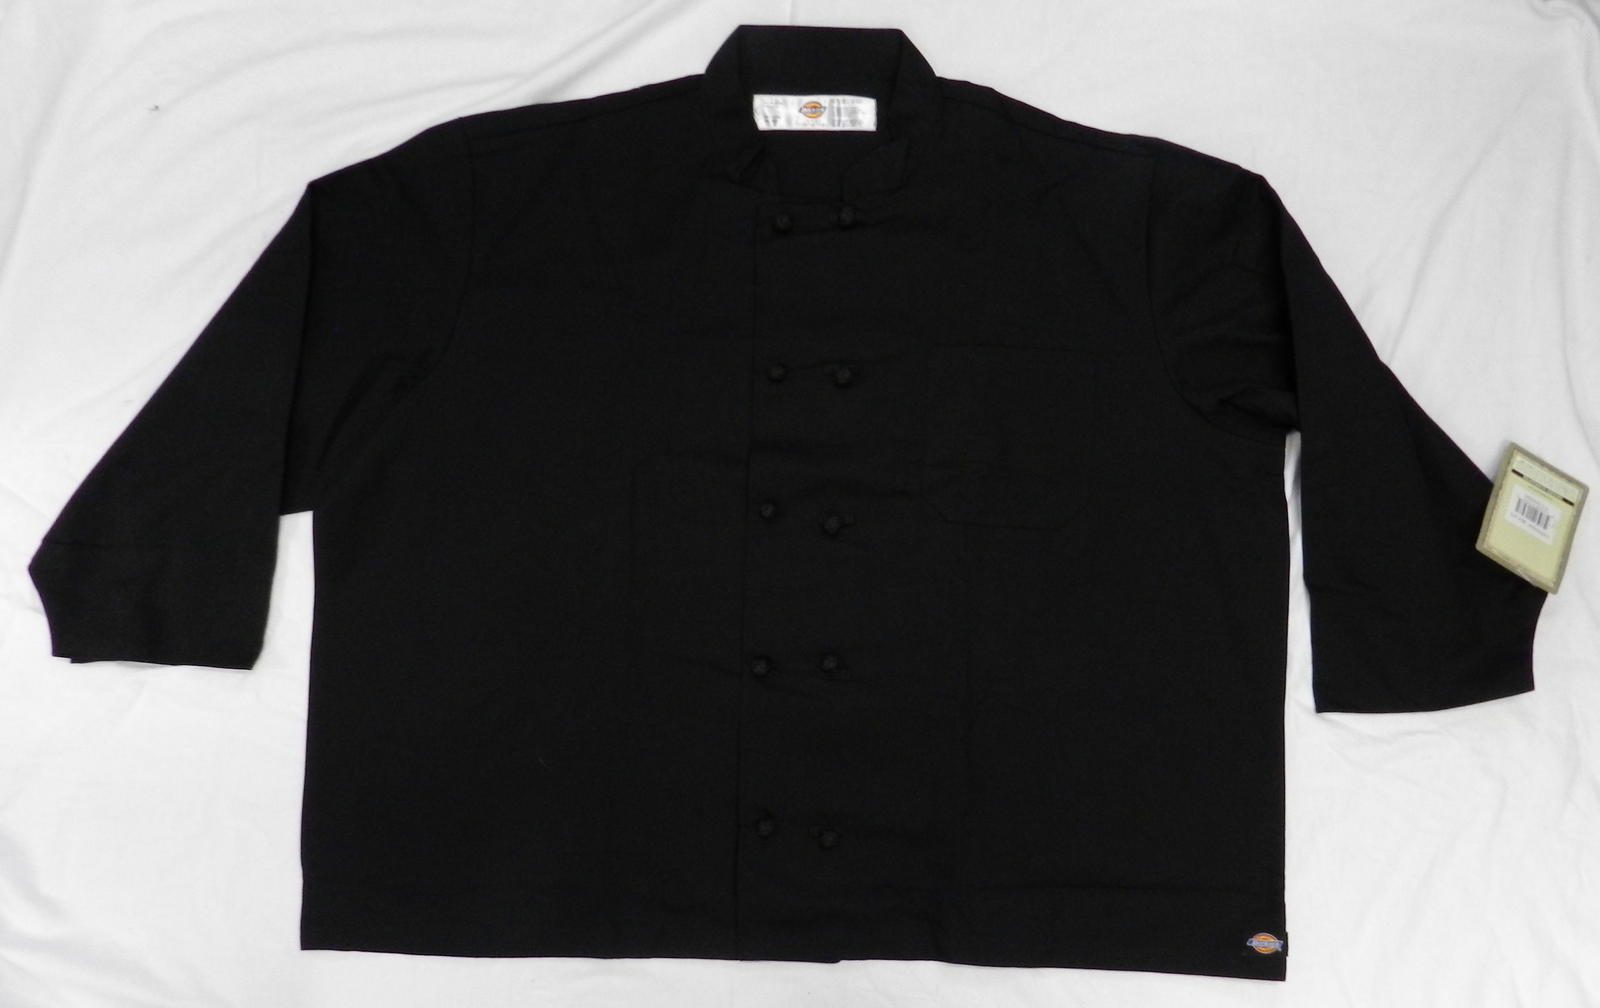 Dickies CW070304C Cloth Knot Button Black Uniform Chef Coat Jacket 5X New